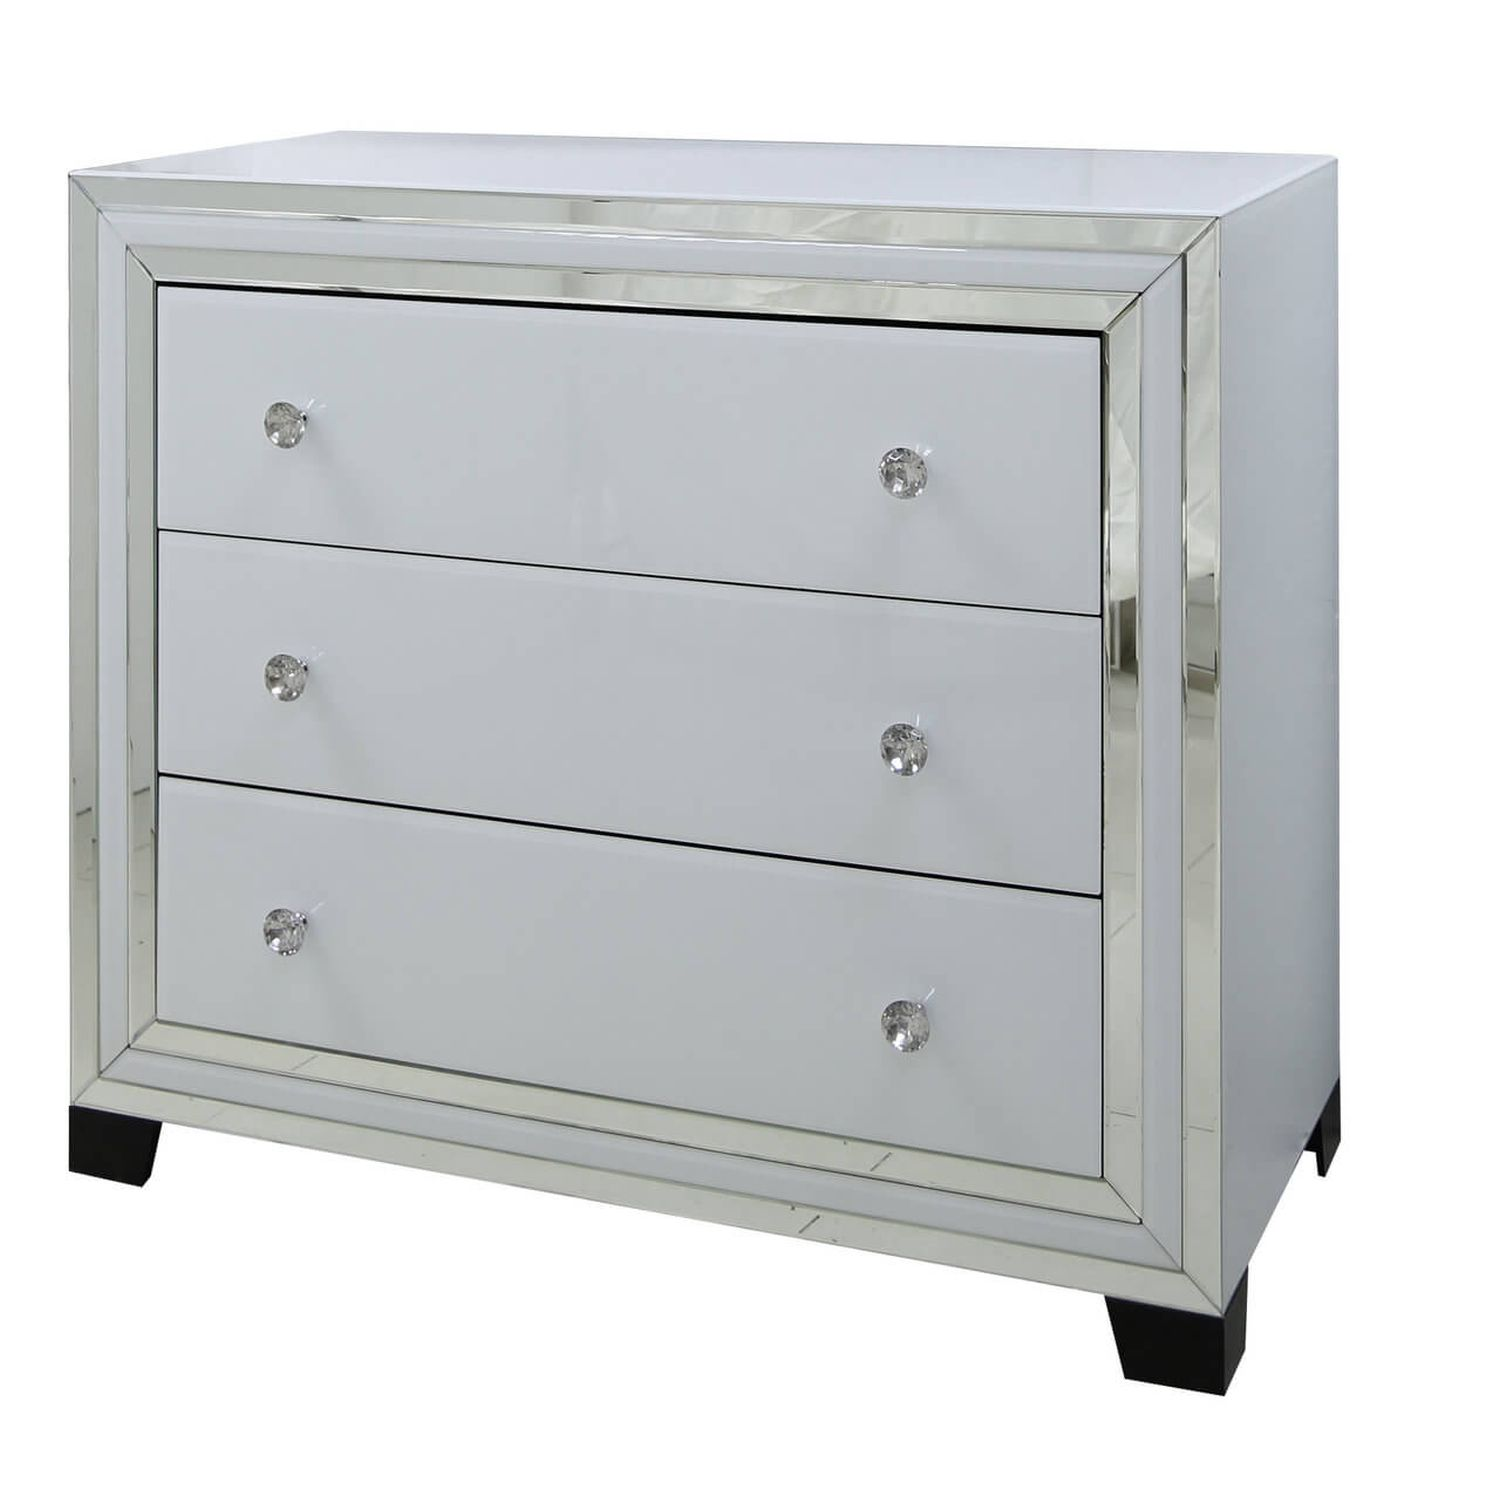 Image of Casa Blanco 3 Drawer Wide Chest